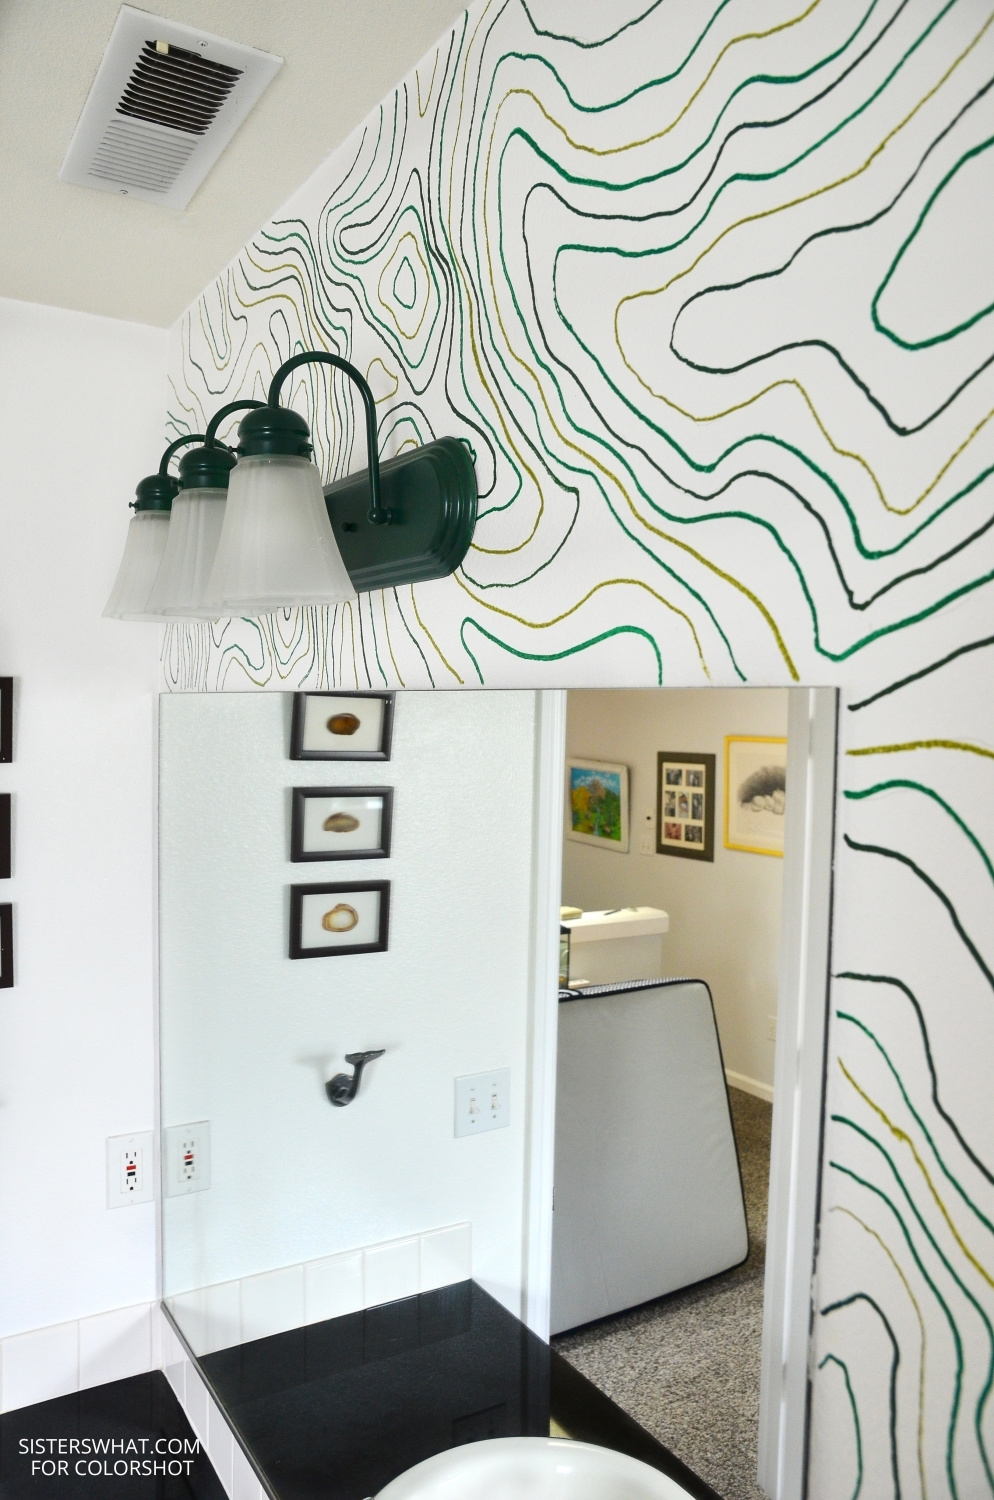 Use a projector to project pattern onto wall